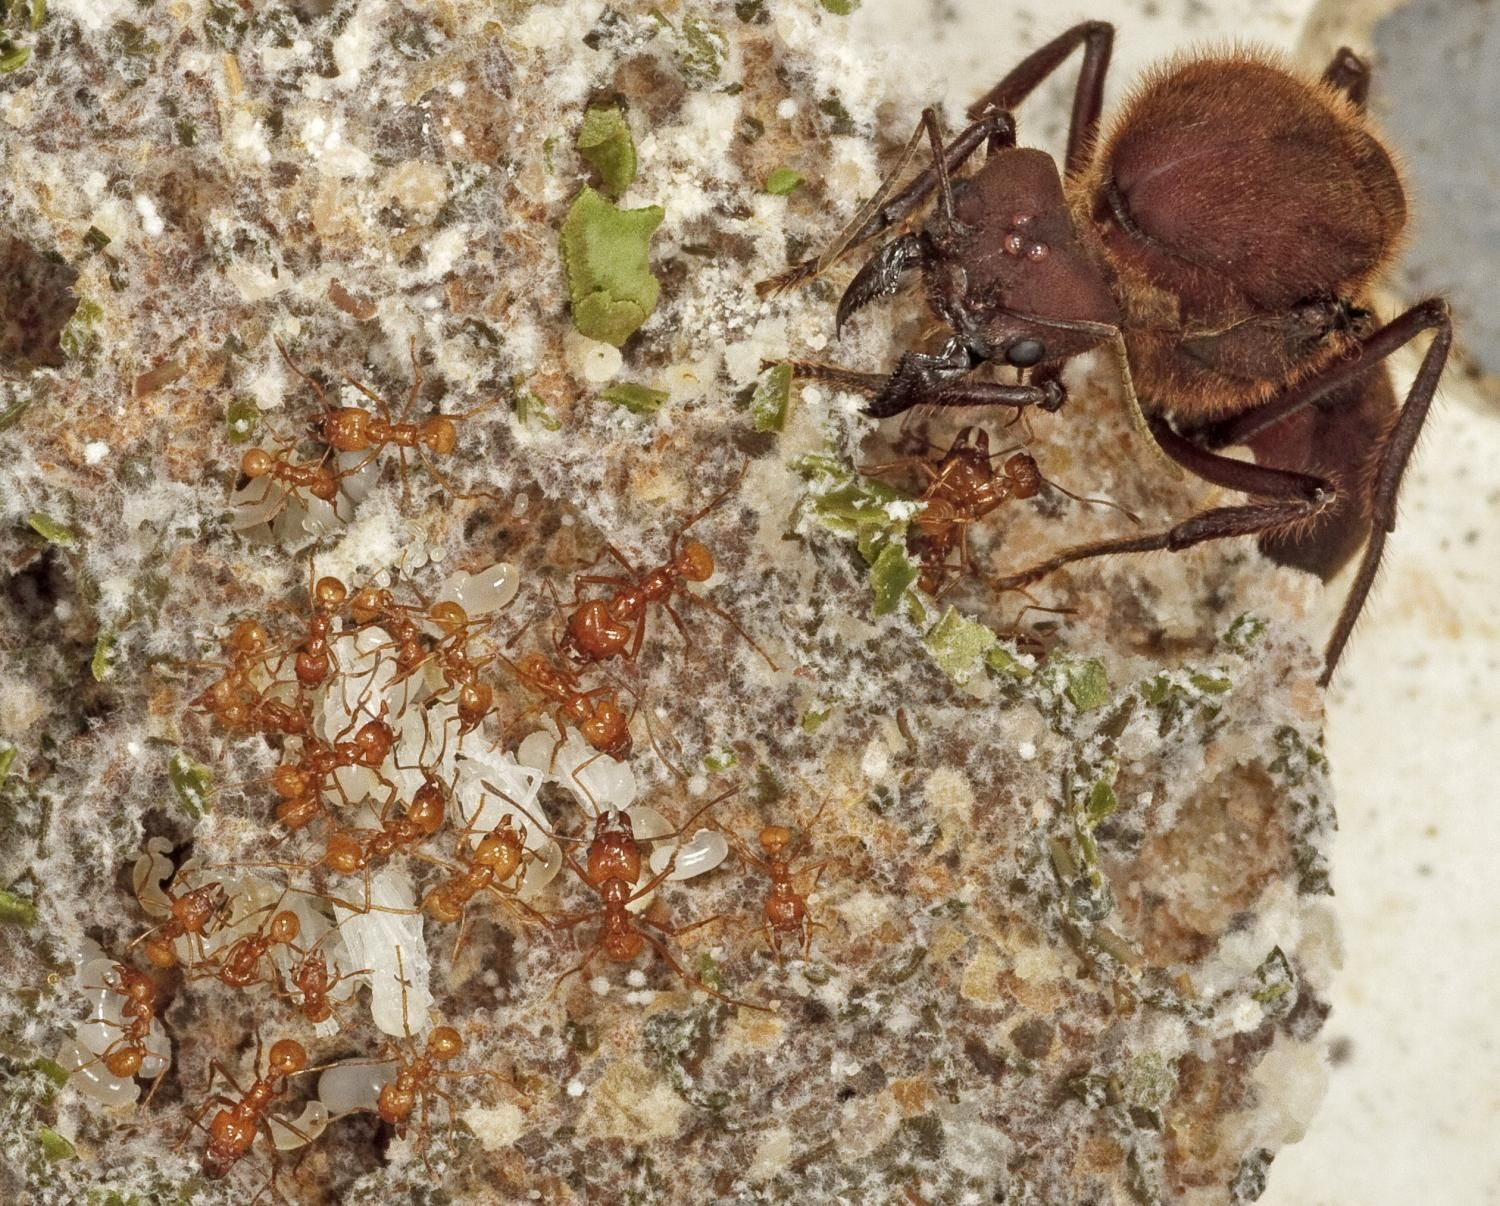 After the age of dinosaurs came the age of ant farmers